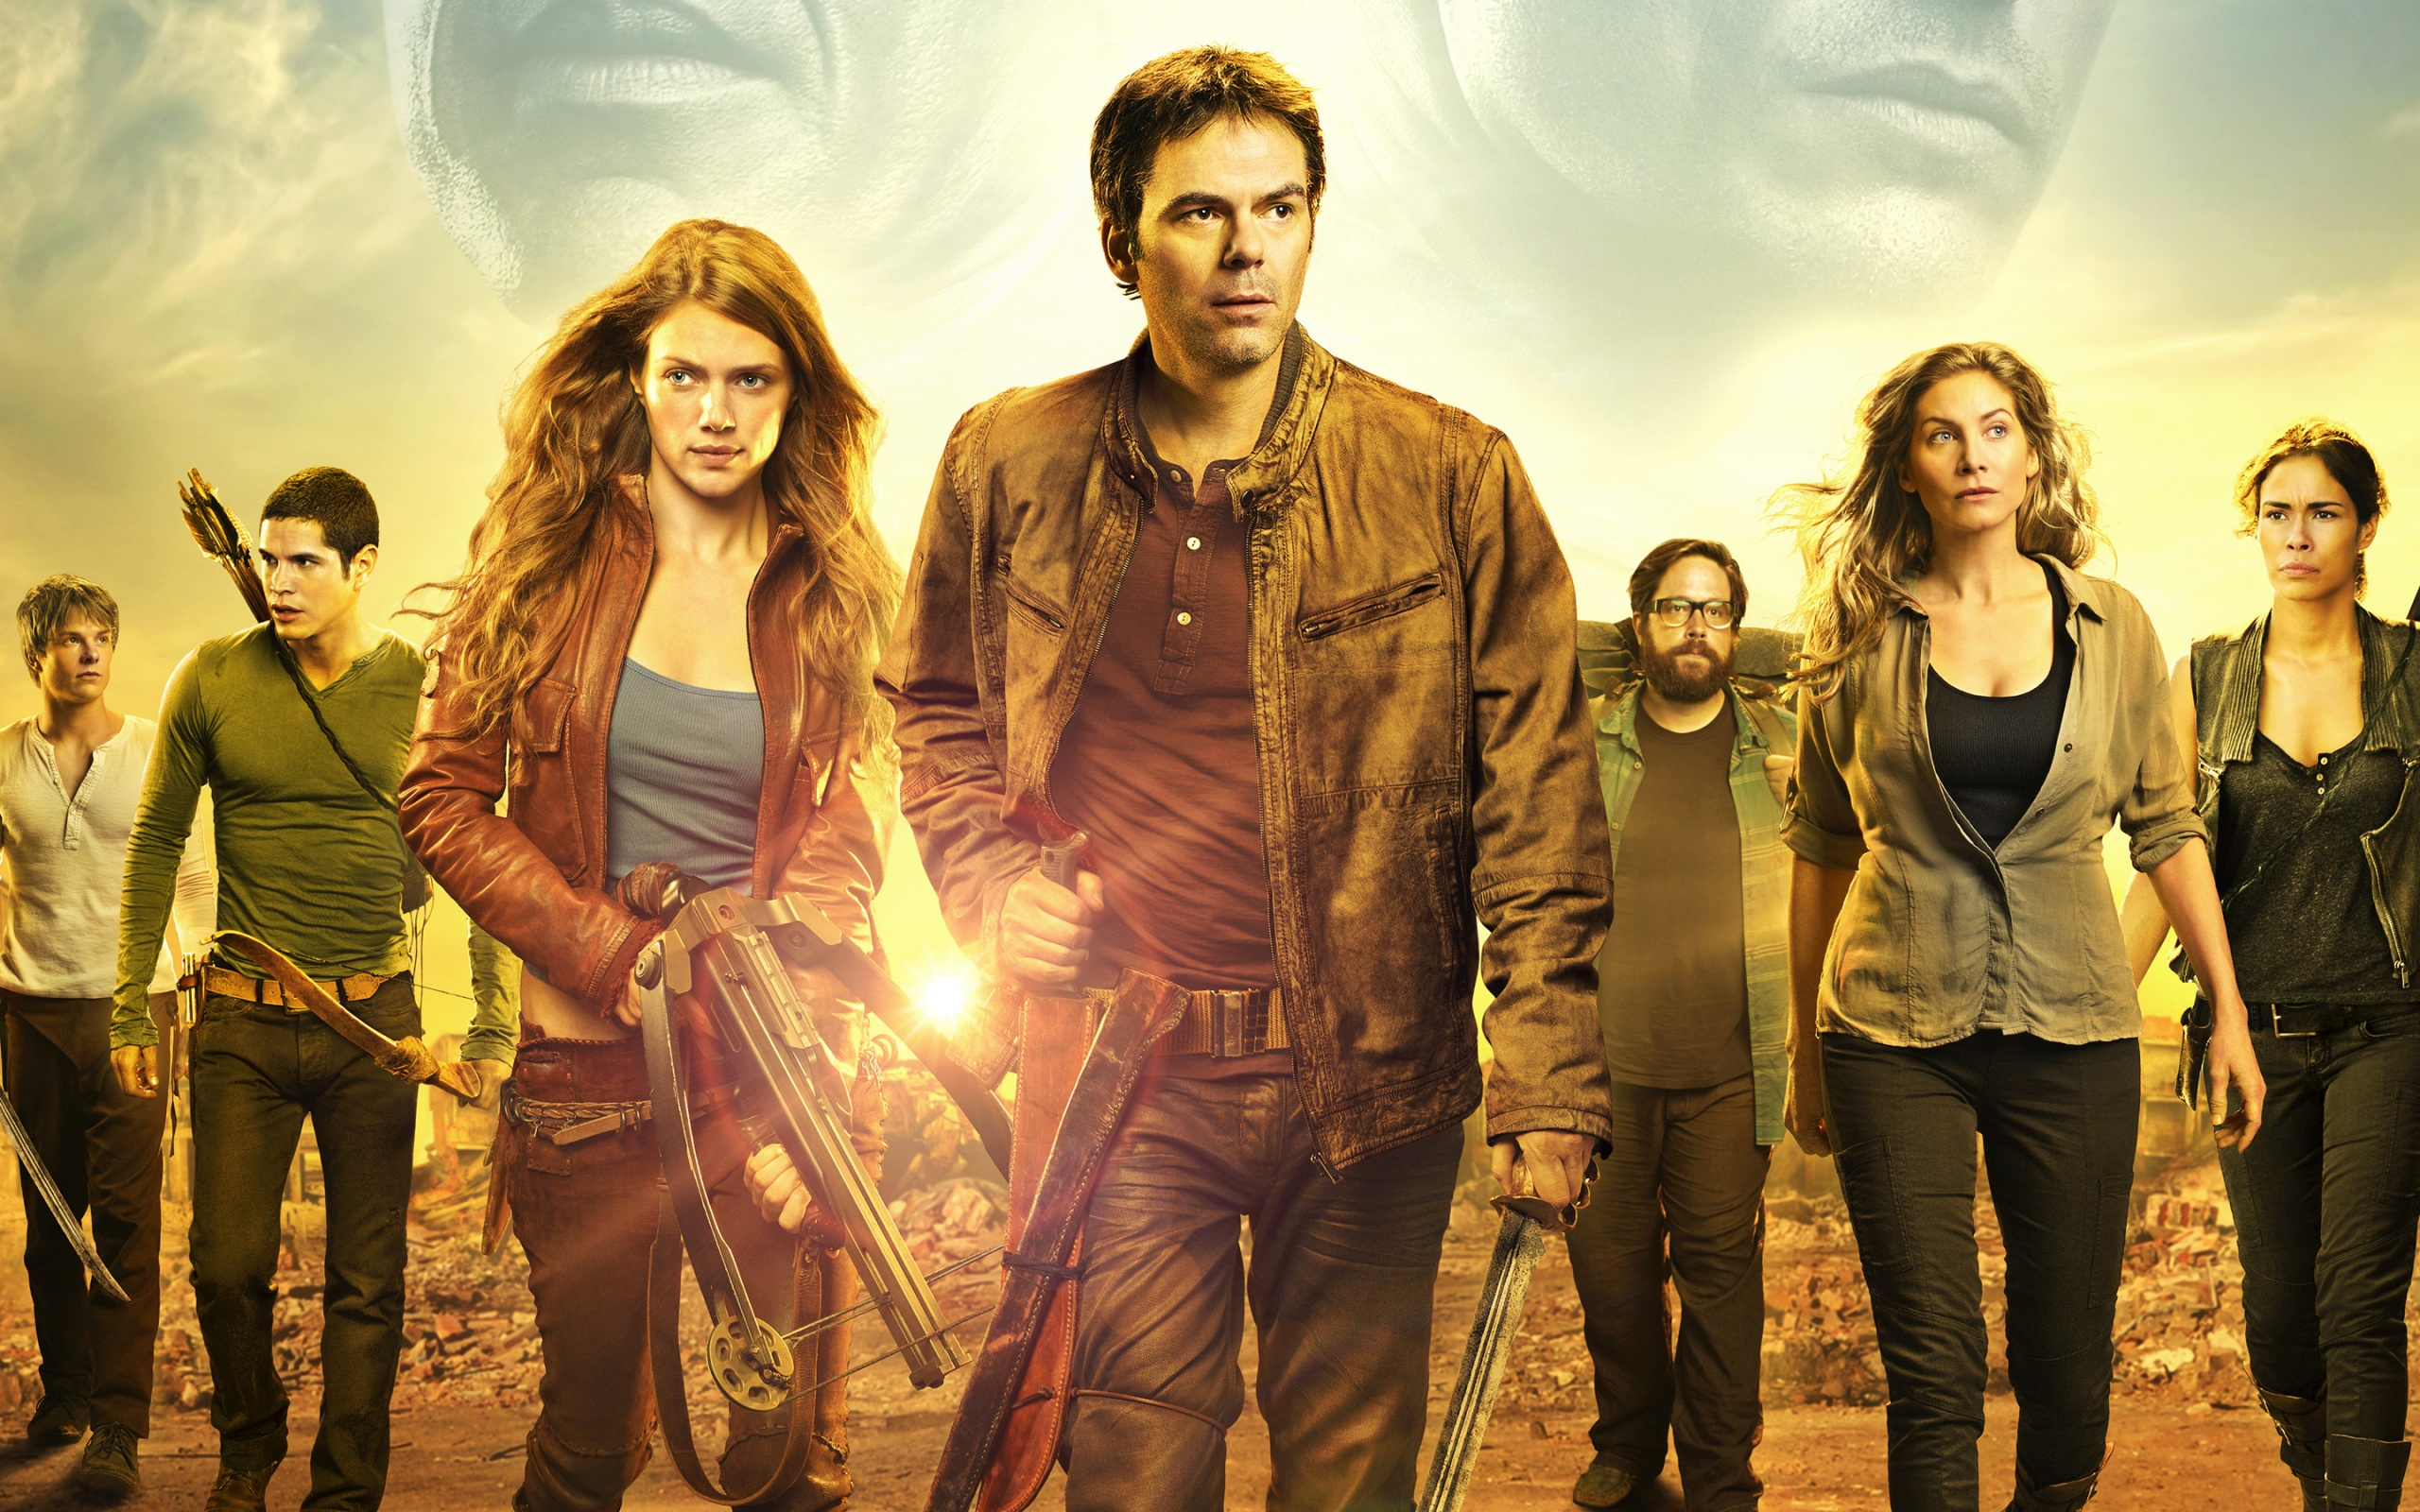 revolution tv series wallpapers in jpg format for free download